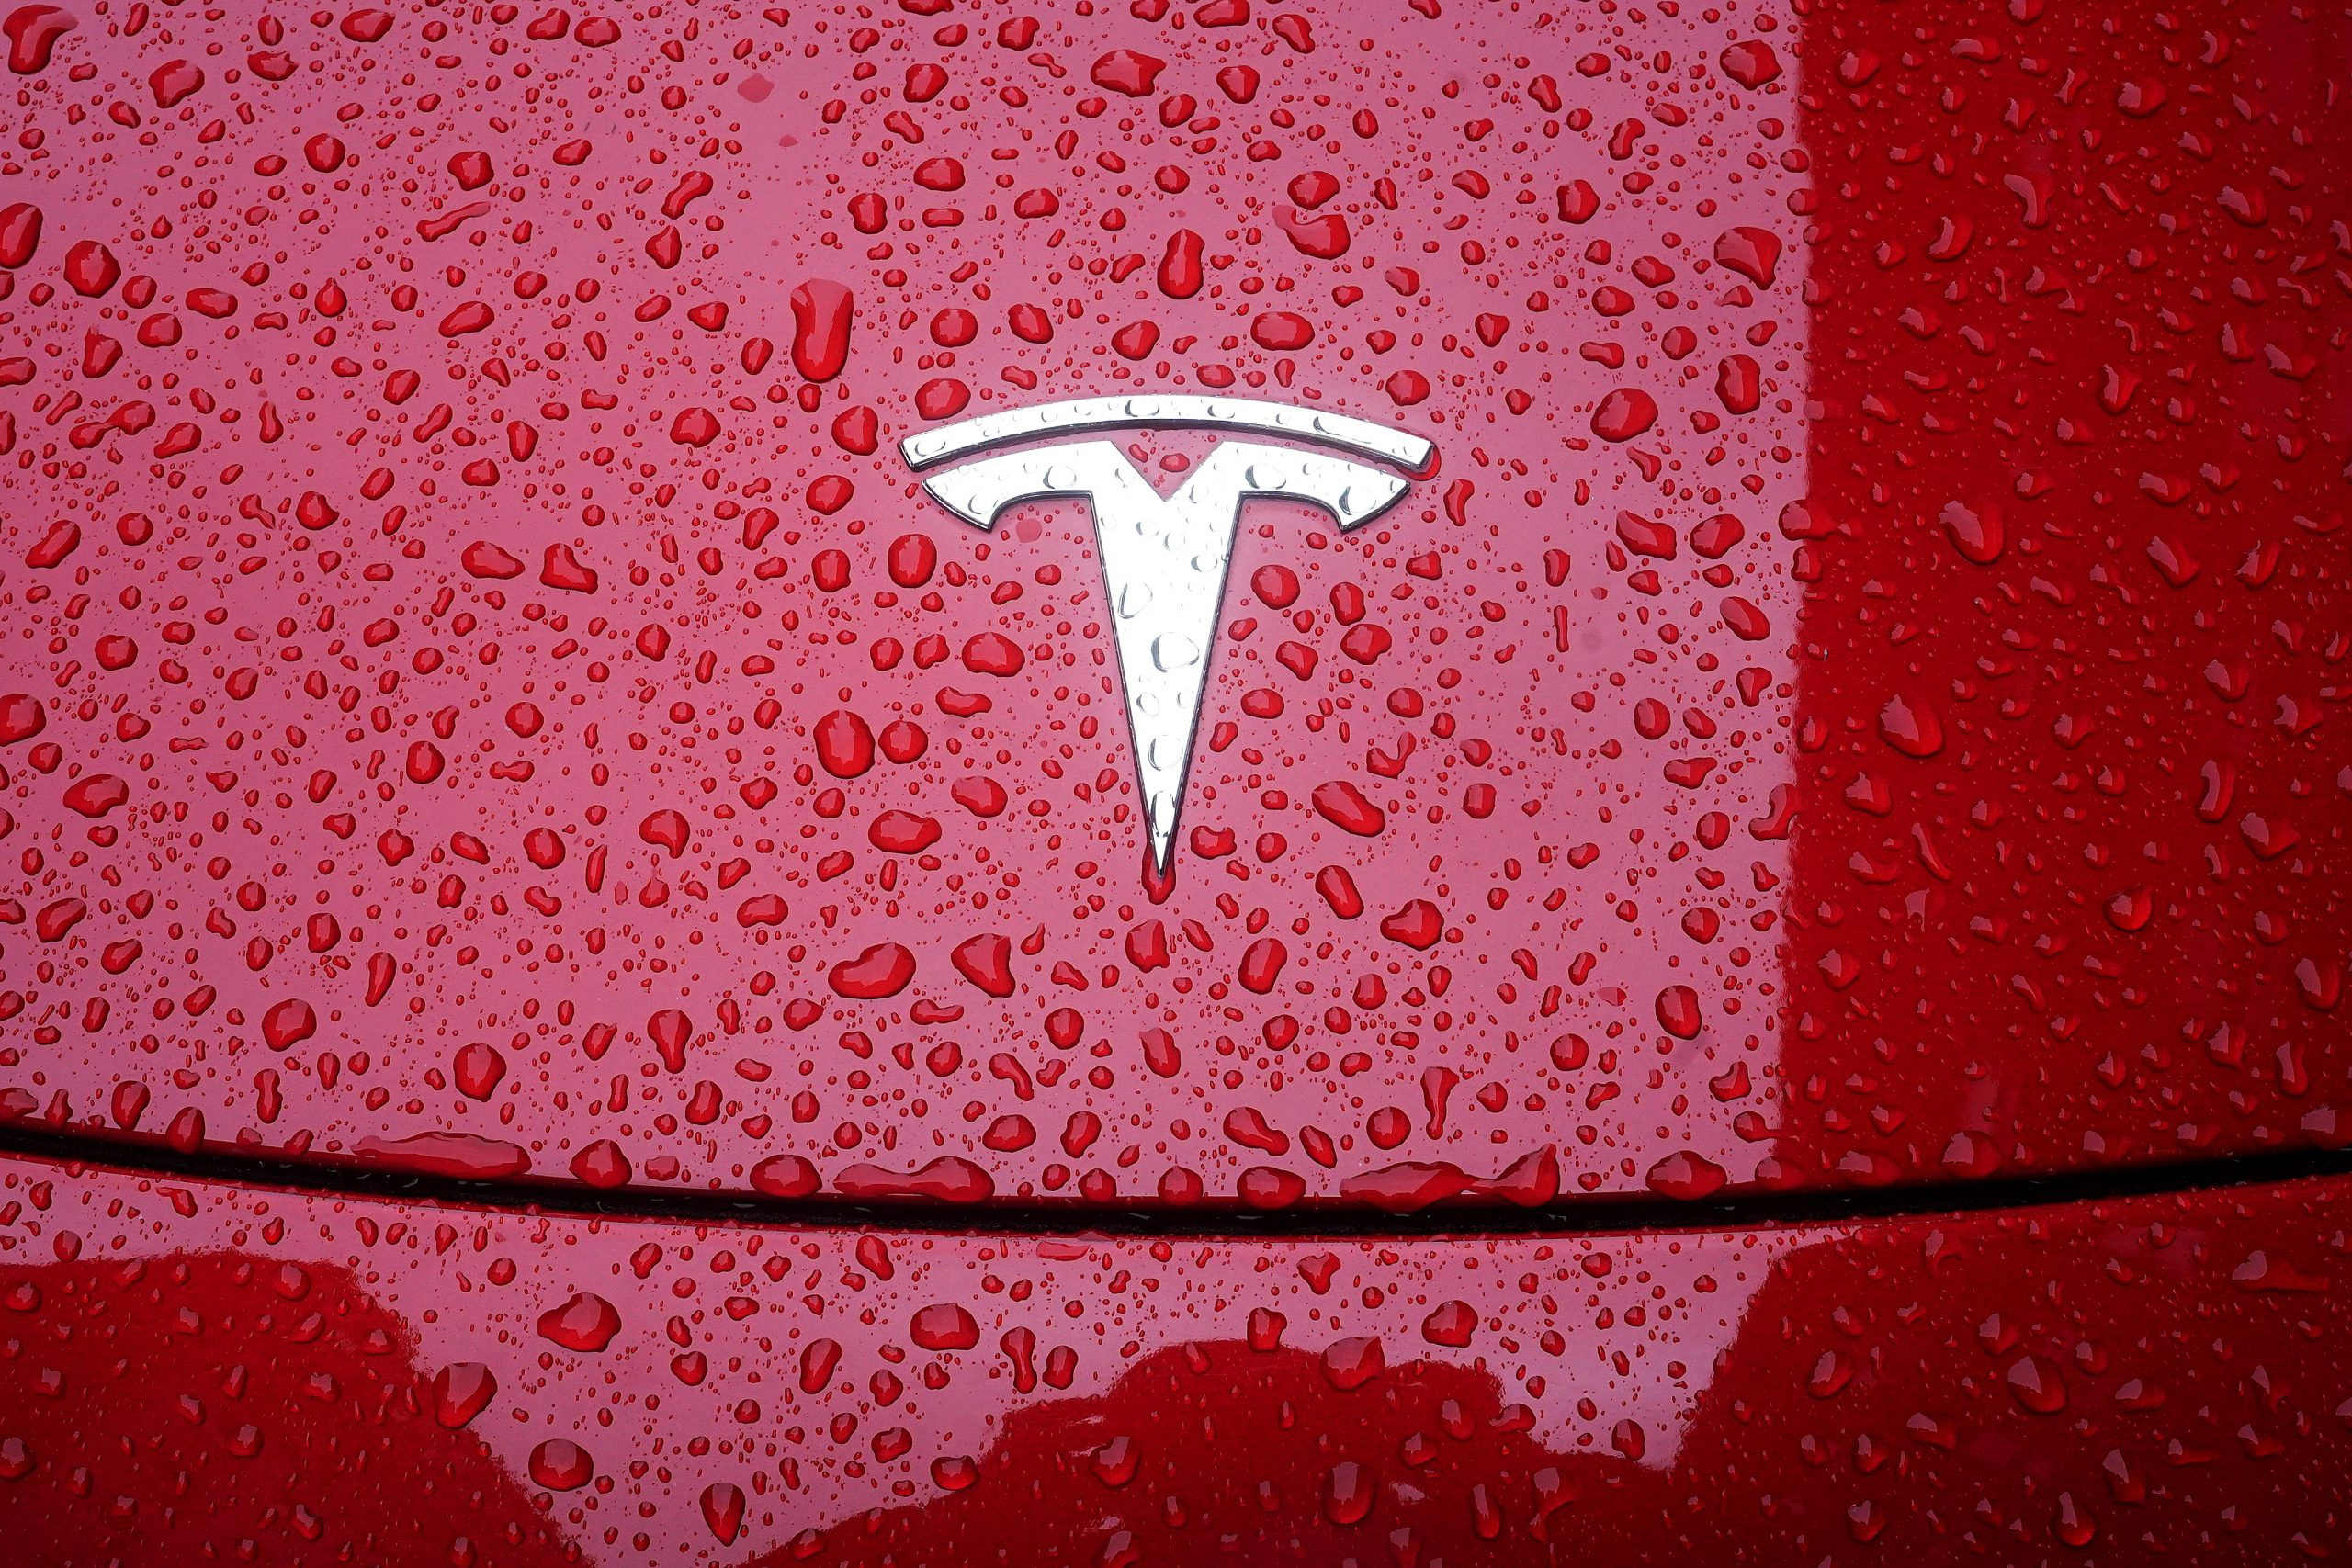 Tesla Lobbies India For Sharply Lower Import Taxes on EVs: Sources